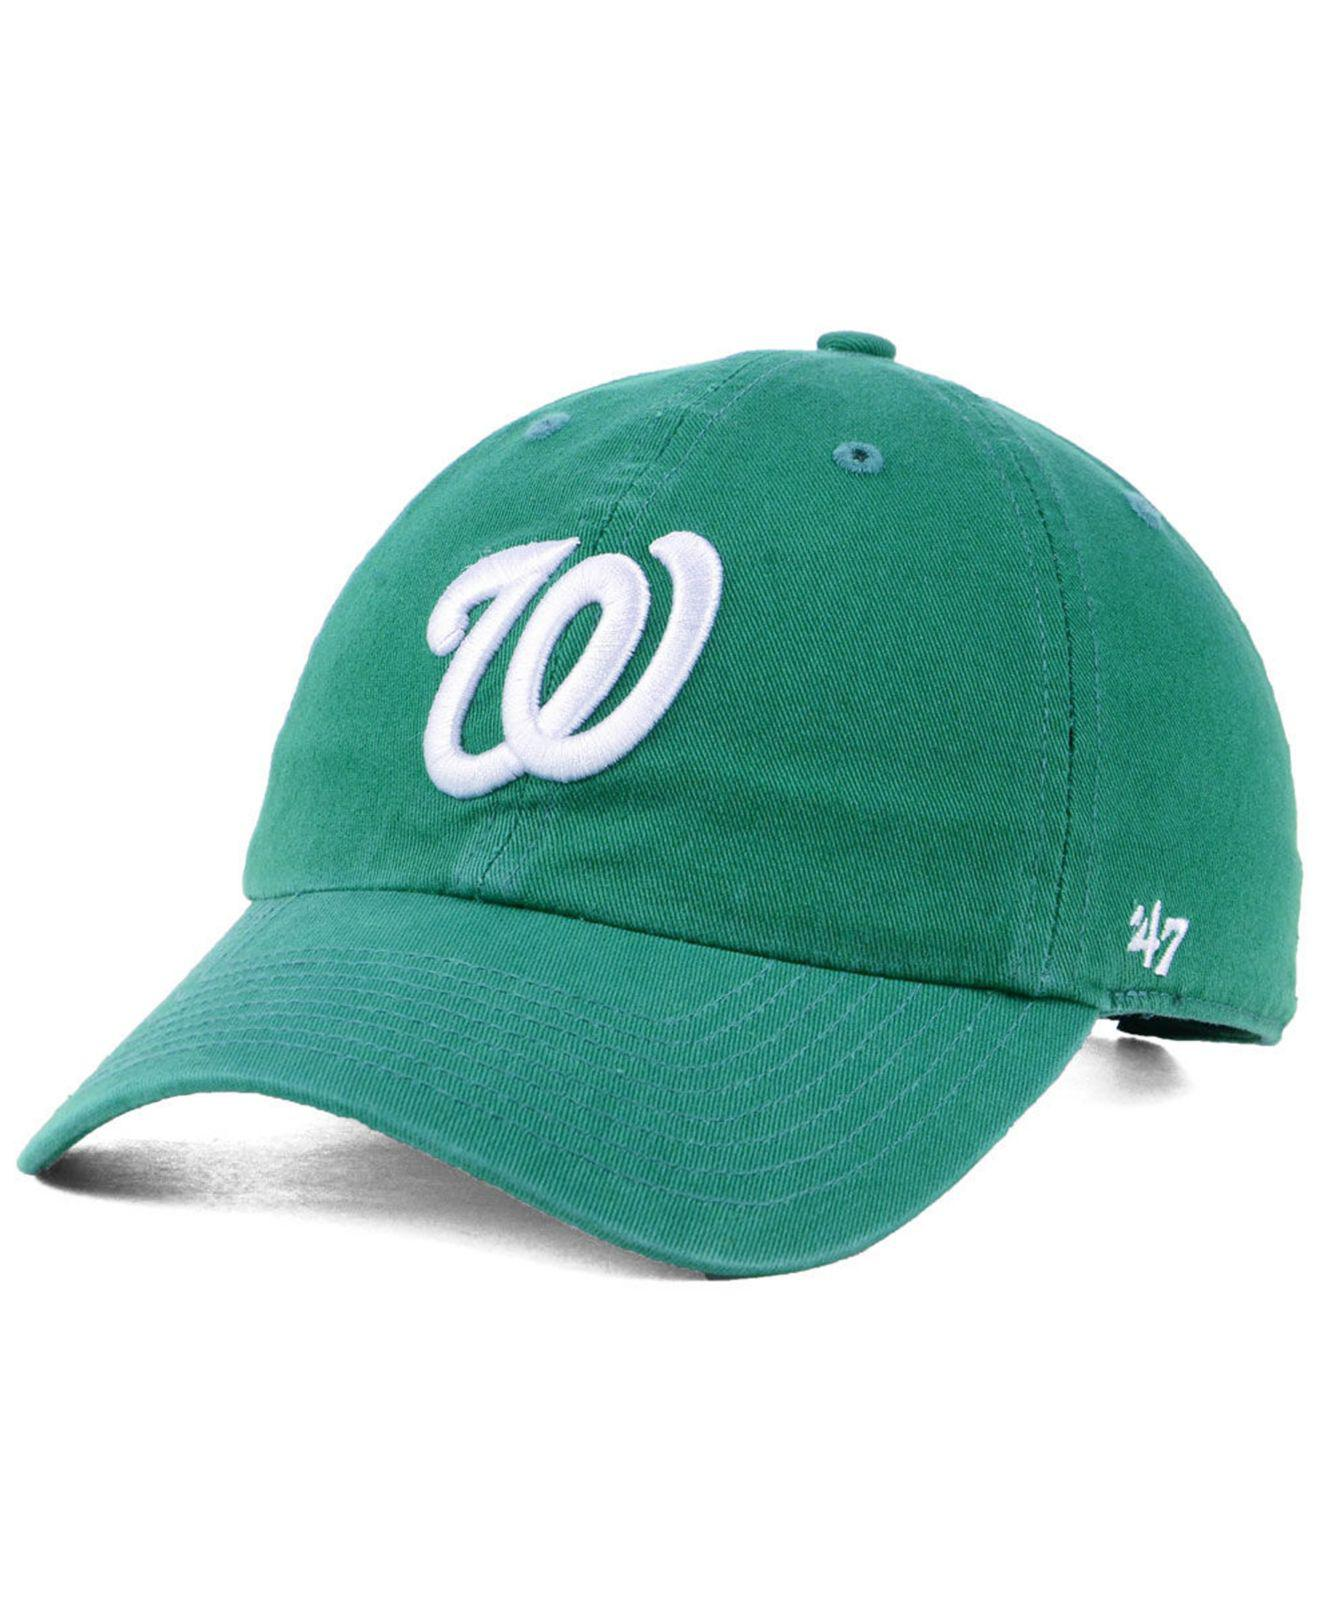 sports shoes 05875 75e64 ... purchase 47 brand. mens green washington nationals kelly white clean up  cap bdacc 5ce85